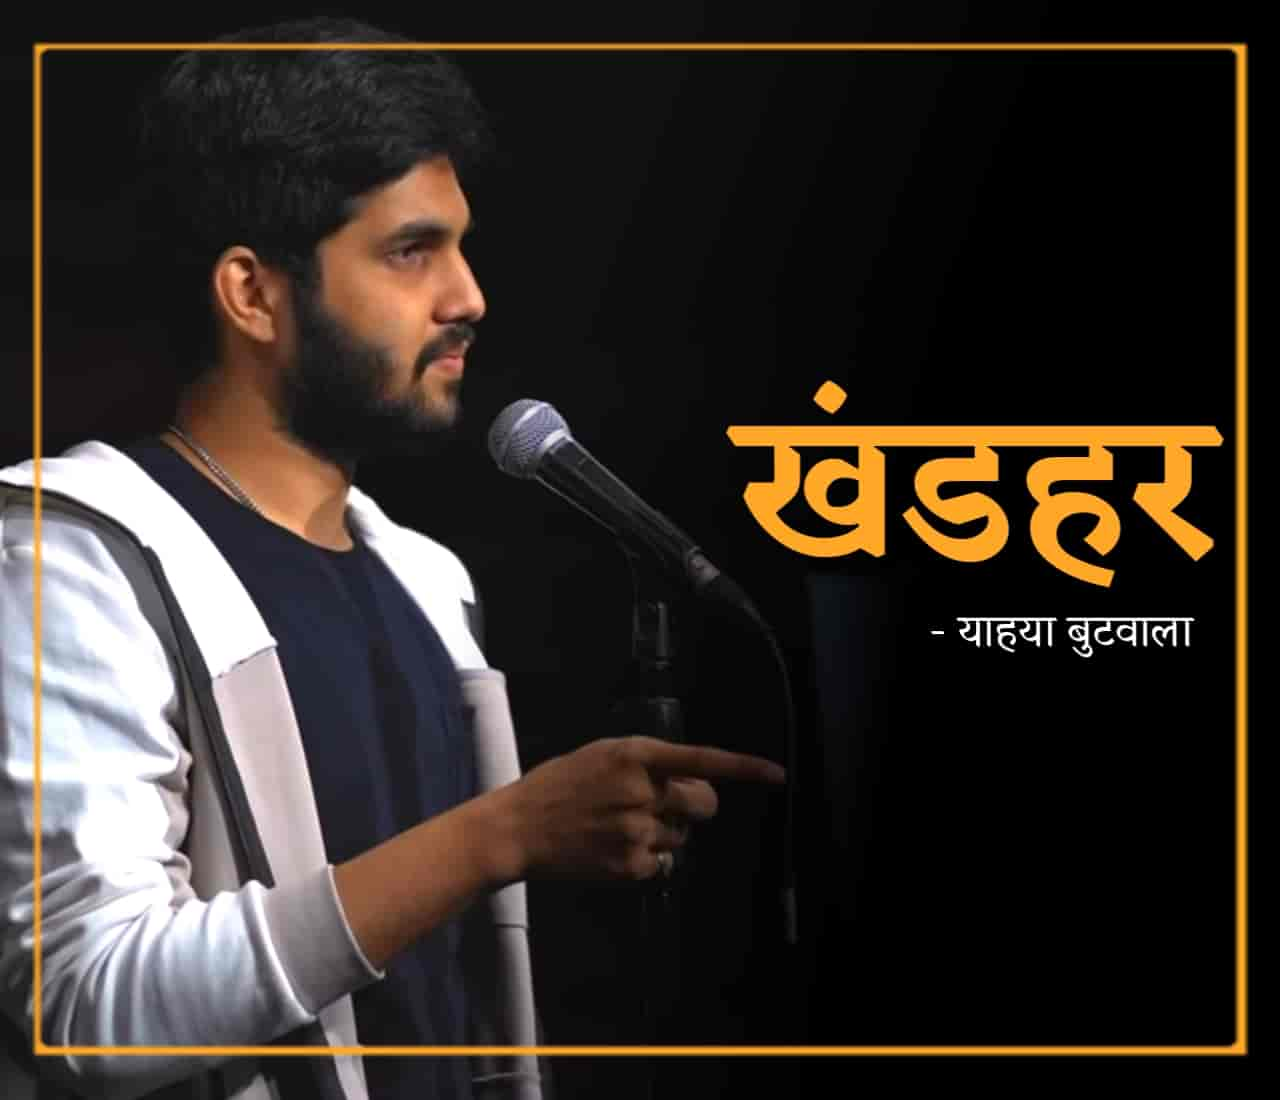 This beautiful positive Poetry 'Khandar' which is written and performed by Yahya Bootwala